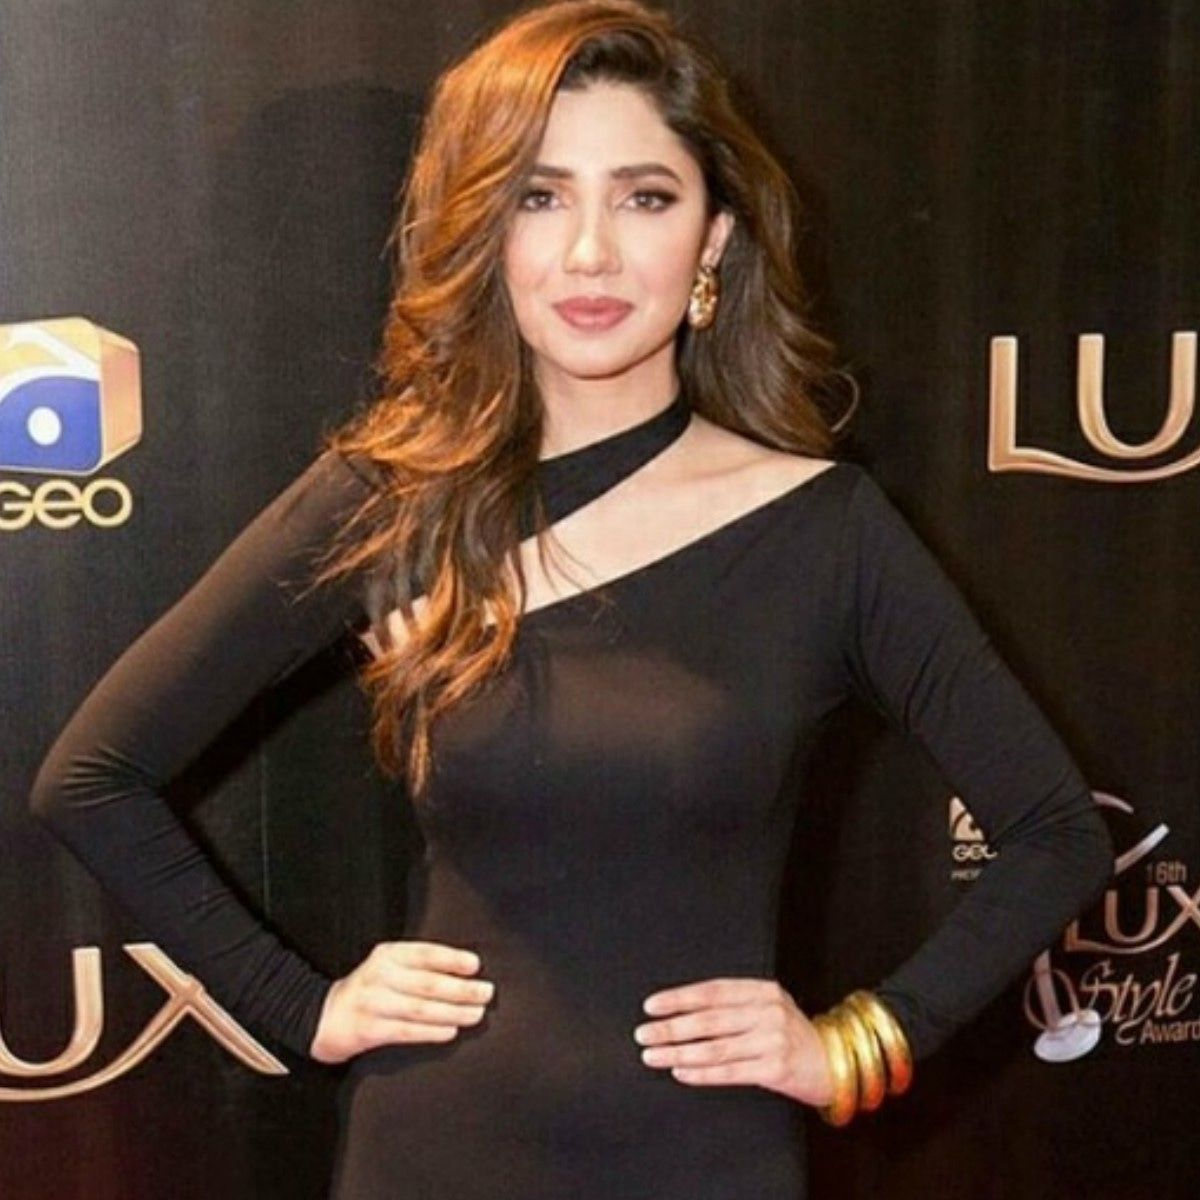 Mahira Khan Is Gorgeous In Black Dress The Best Red Carpet Looks From The Lux Style Awards 2017 April Black Dress Makeup Mahira Khan Dresses Dress Makeup [ 1200 x 1200 Pixel ]